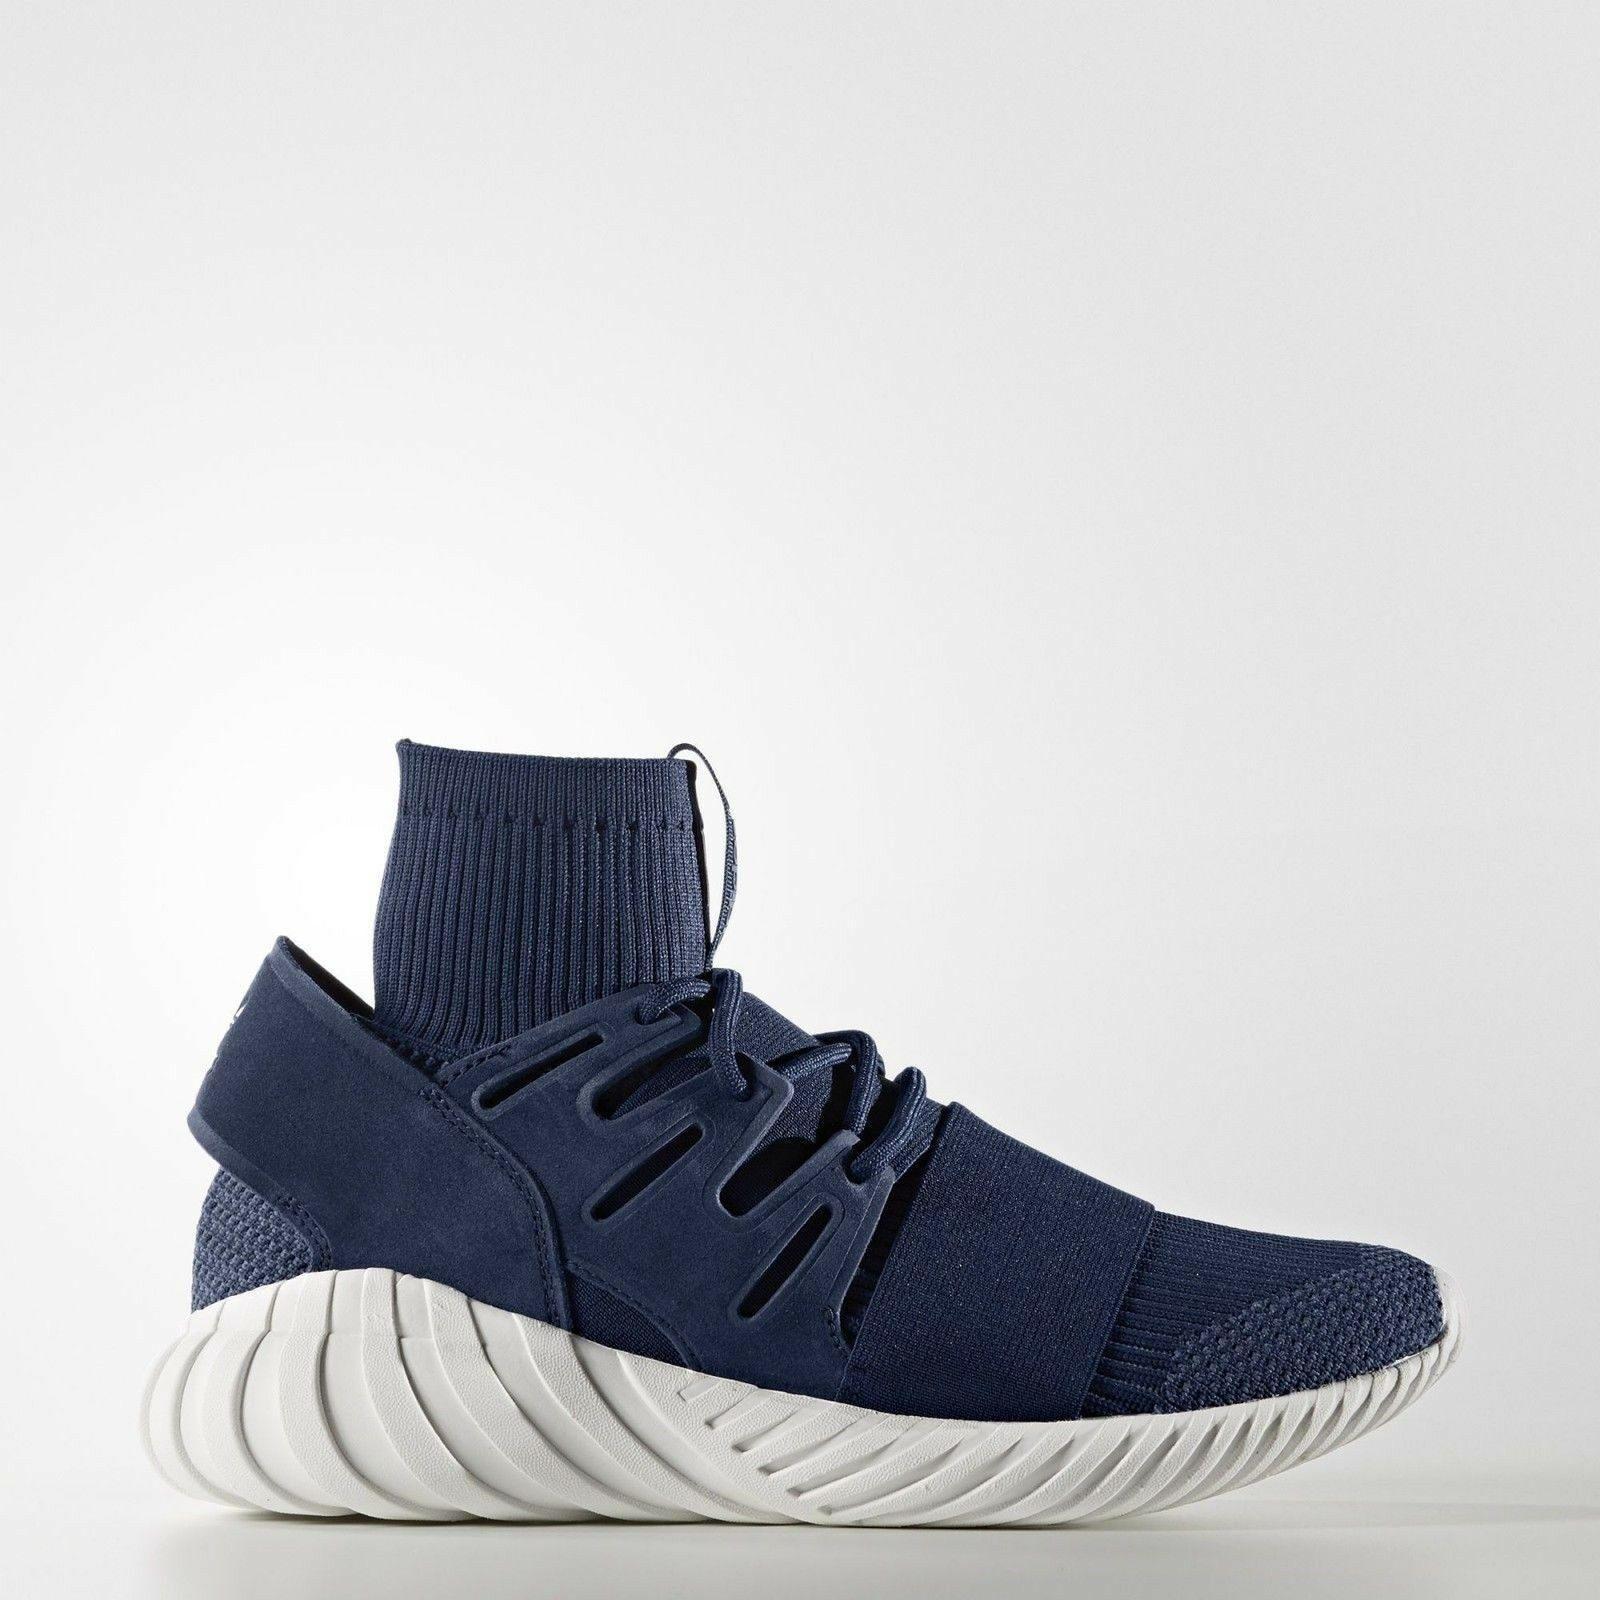 Adidas Originals Tubular Doom PK Primeknit Night Marine Navy Men boost S80103 5